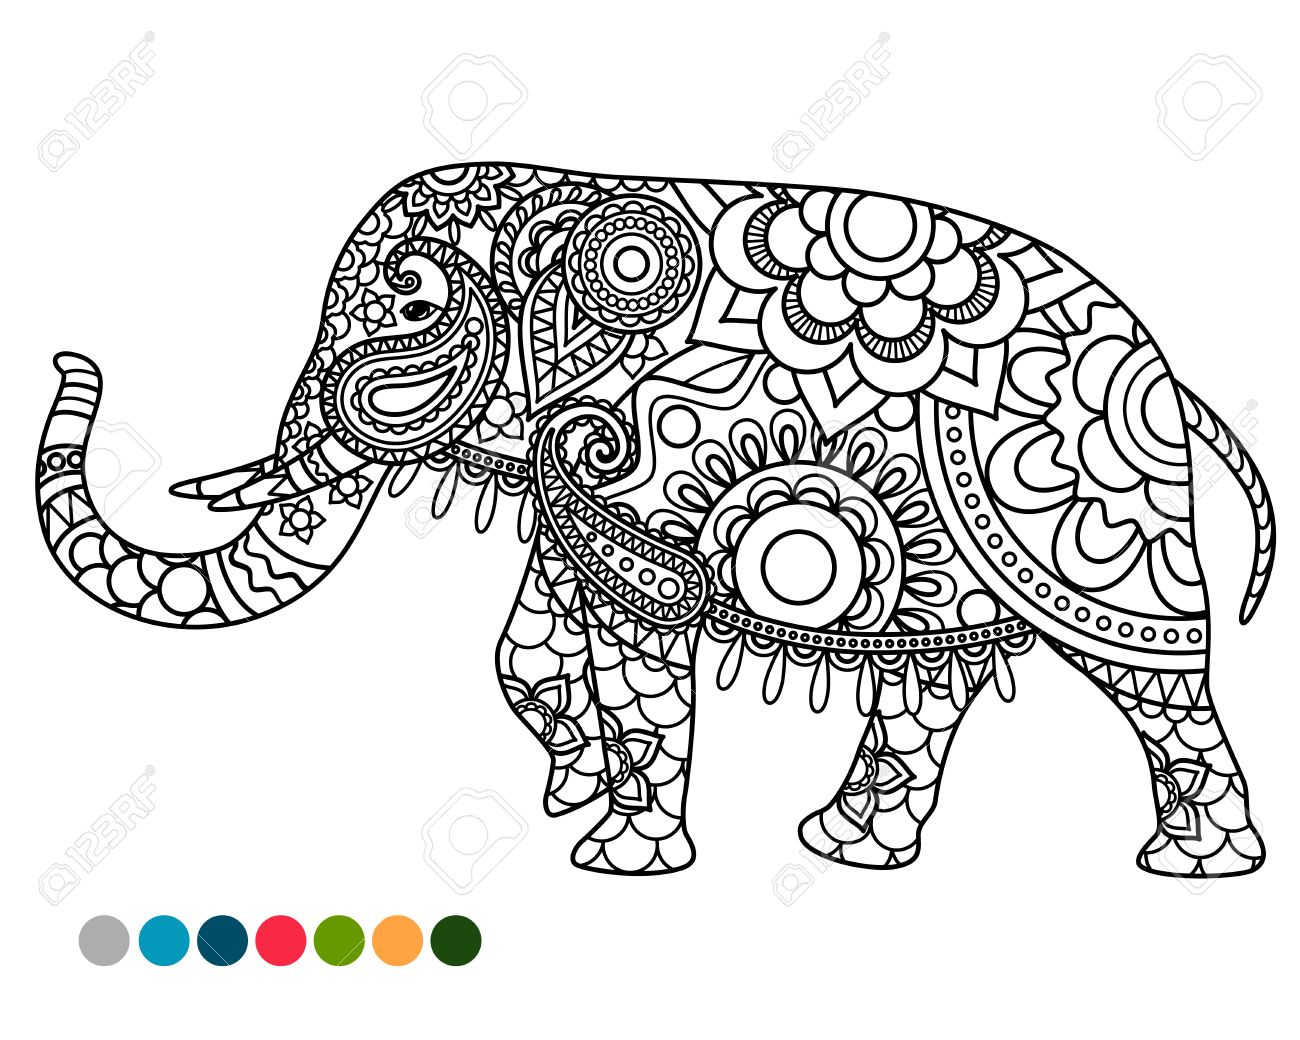 Elephant Decorated Mandala Ornament Coloring Page With Colors Samples Stock Vector